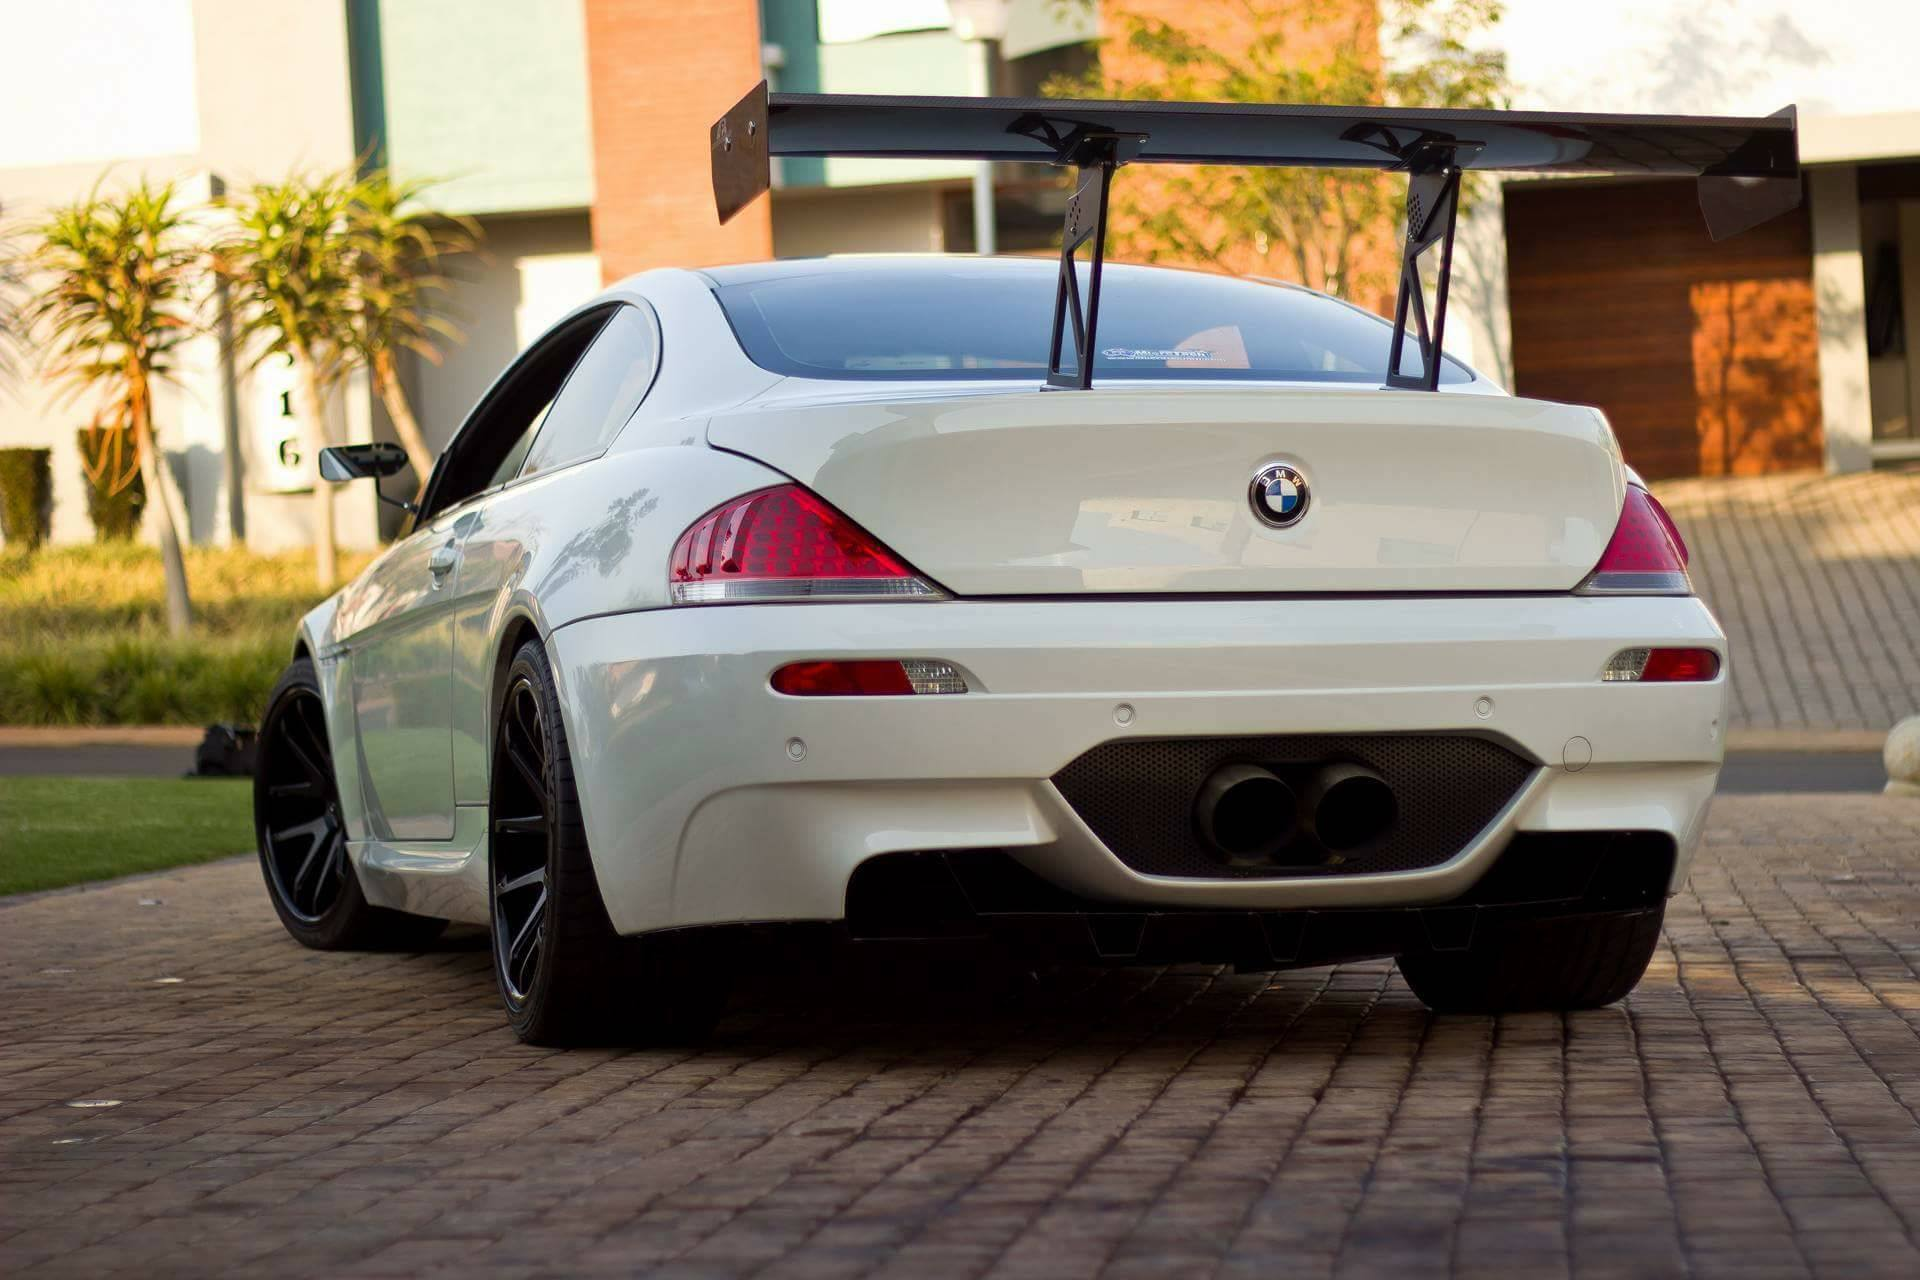 For Sale Bmw M6 With A Six Rotor Engine Swap Depot